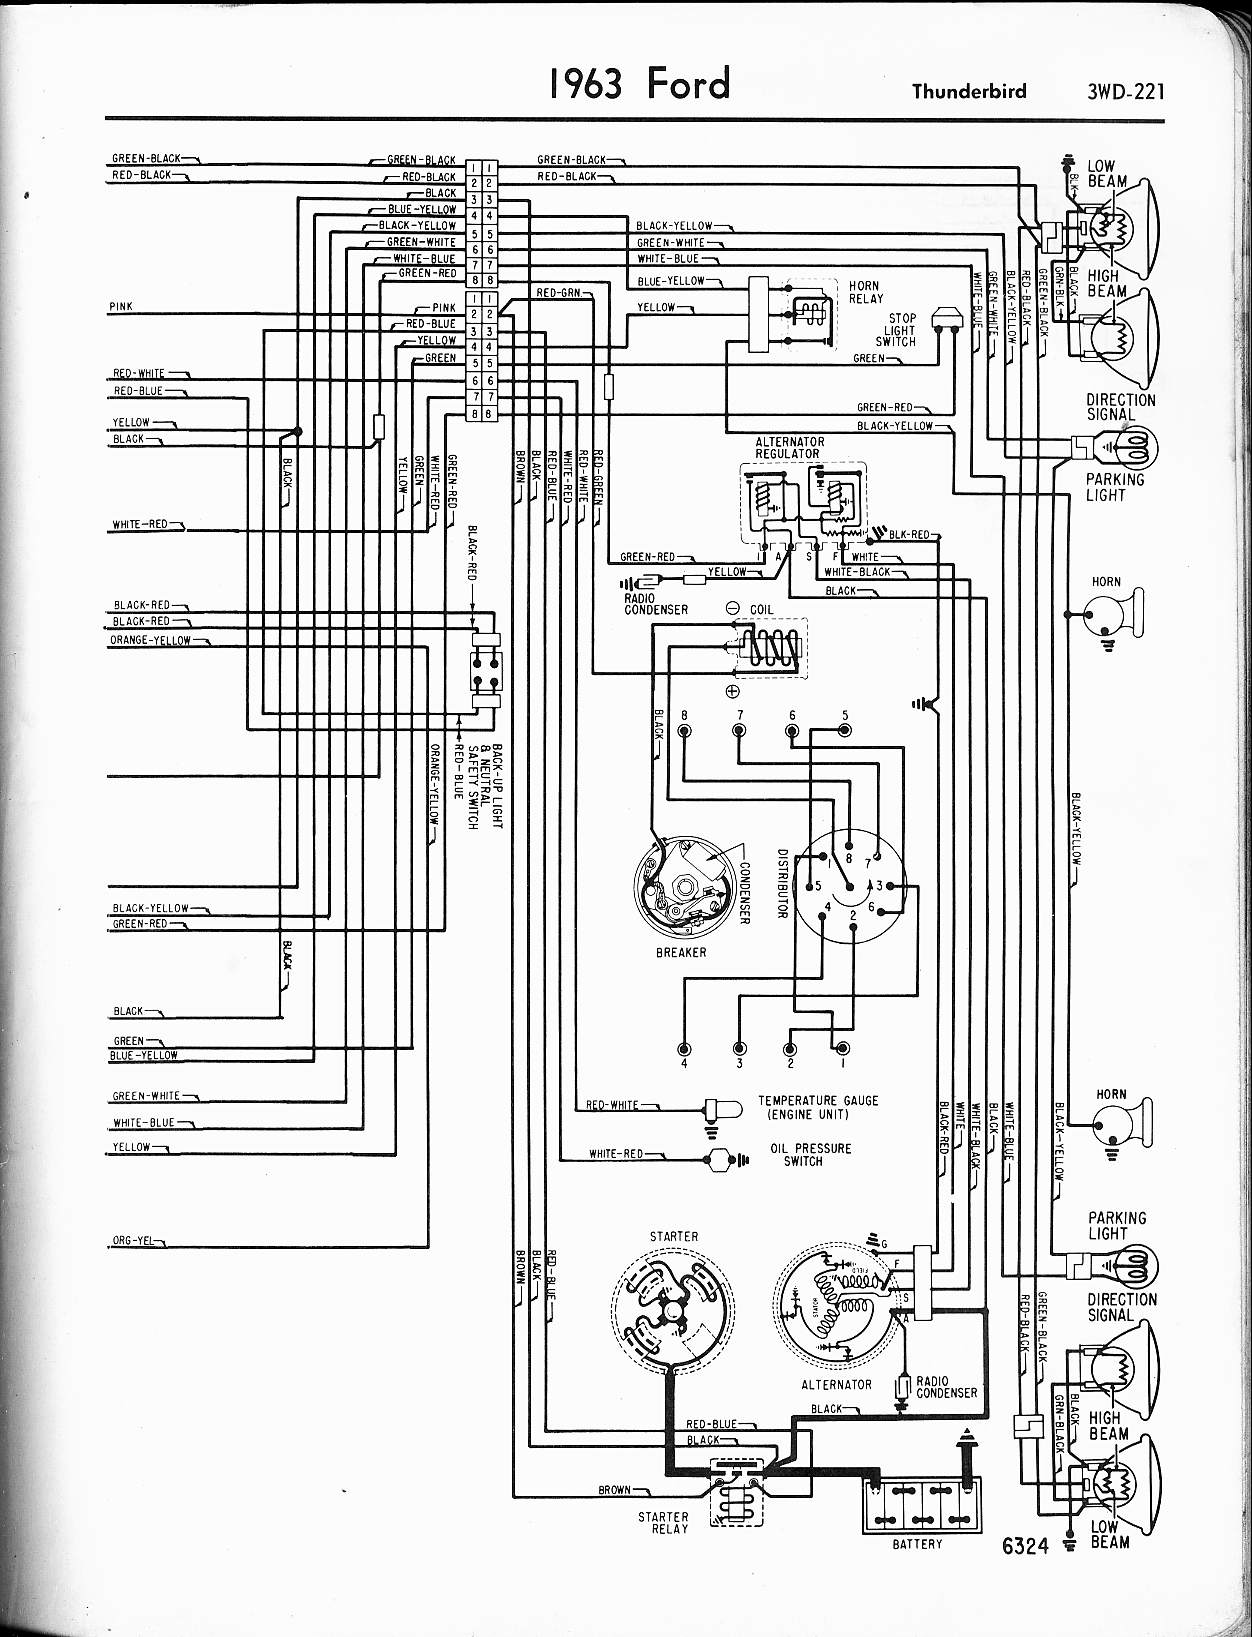 55 ford wiring diagram wiring library 56 Mercury Montclair Convertible 1963 thunderbird right 57 65 ford wiring diagrams